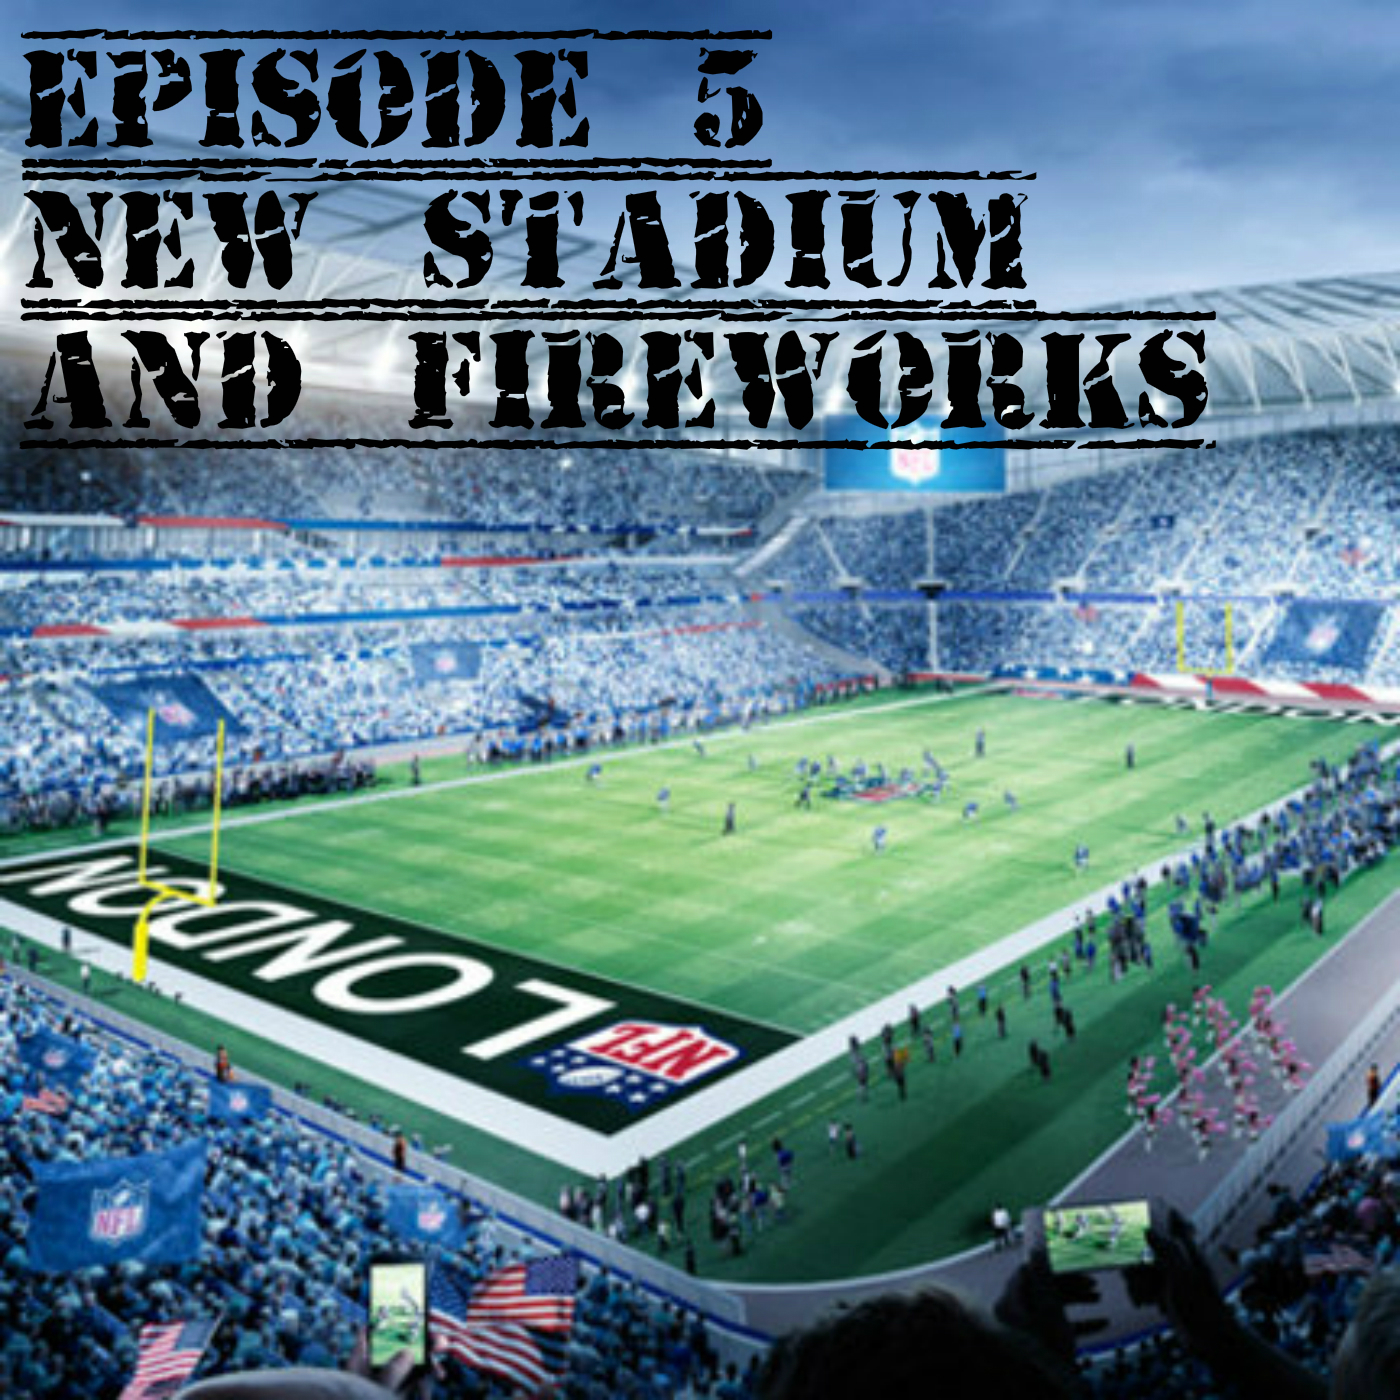 EP New Stadium and Fireworks.jpg